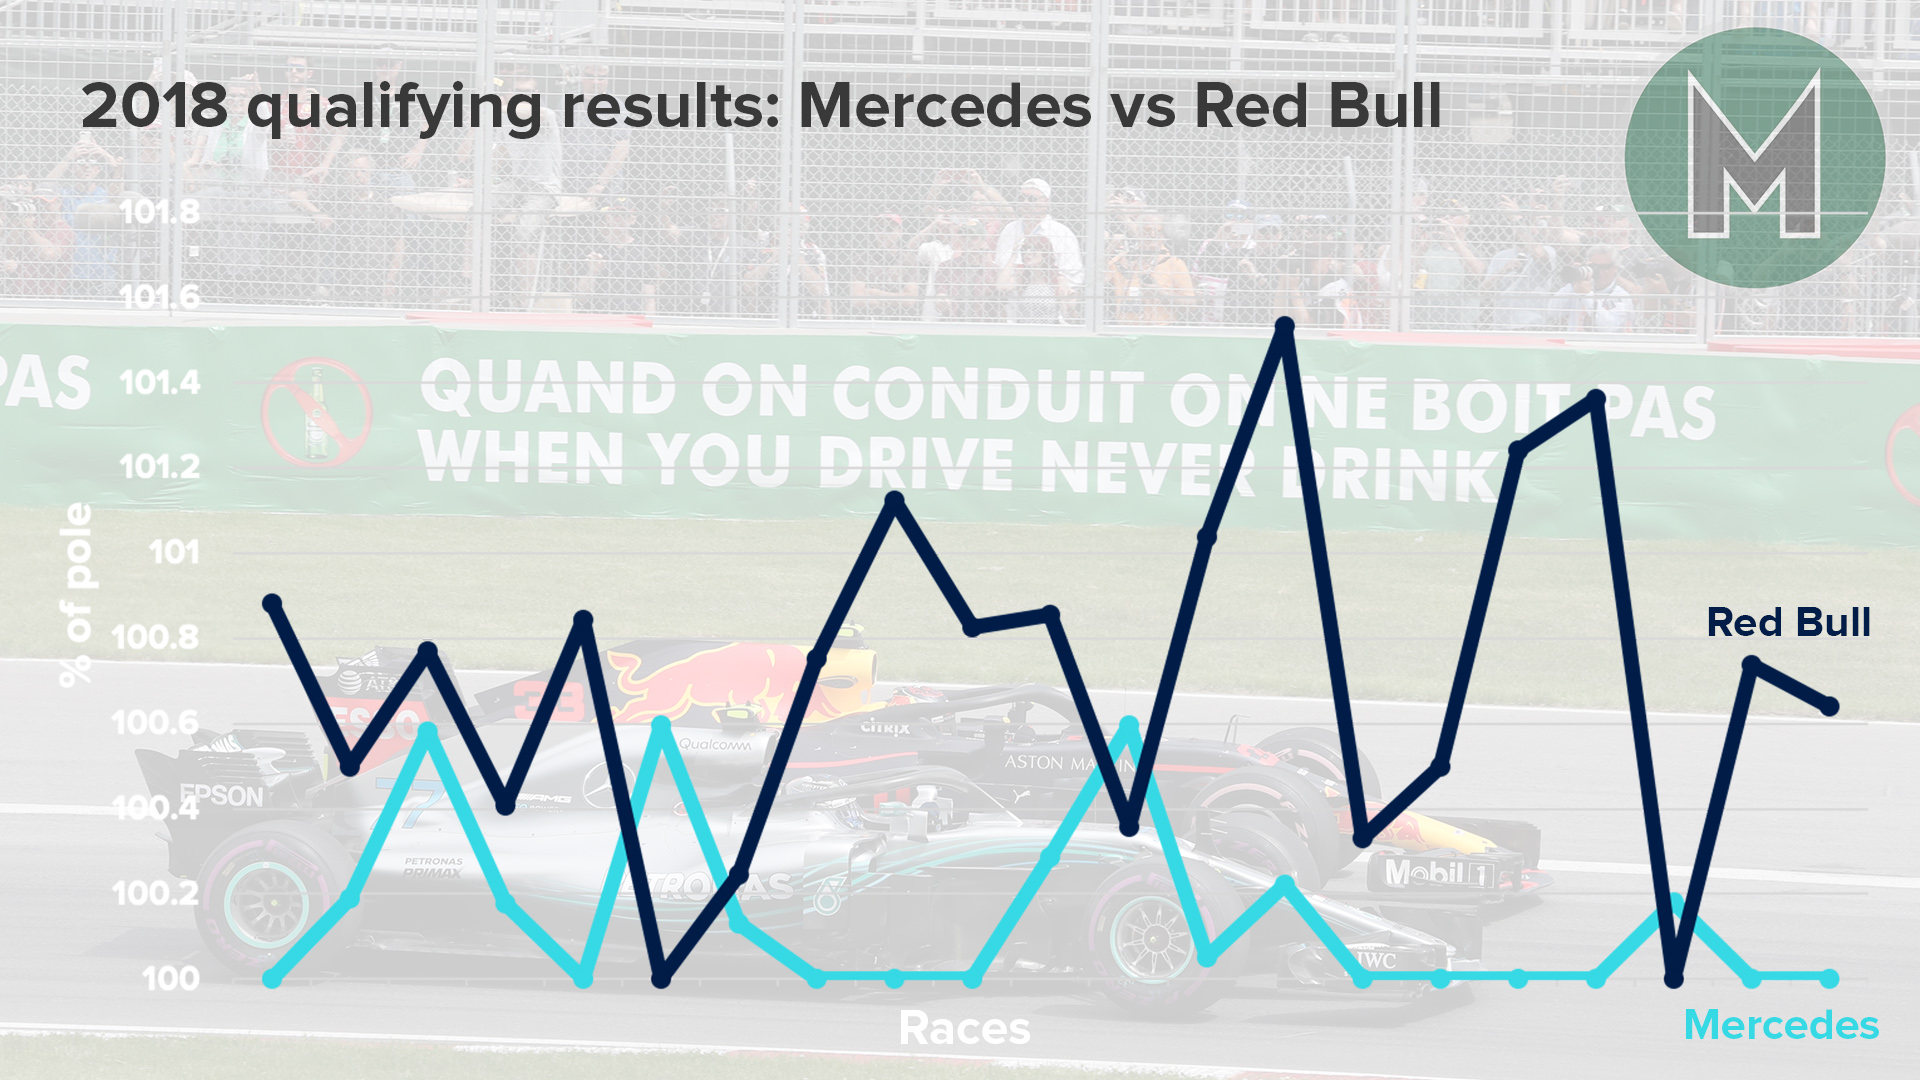 Graph showing Mercedes and Red Bull F1 qualifying performance in 2018